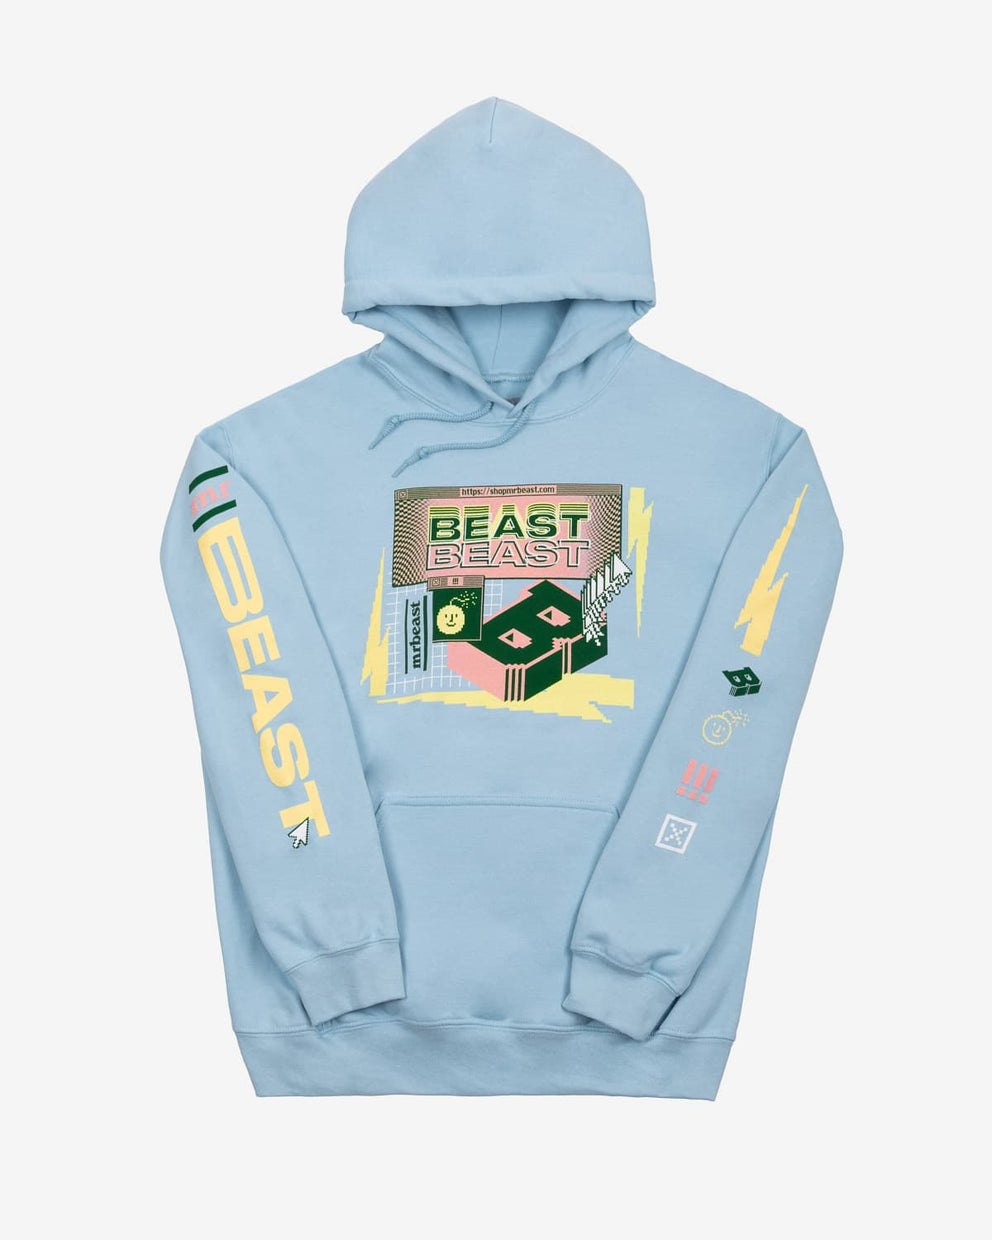 Beast 'Escapism' Hoodie - Light Blue